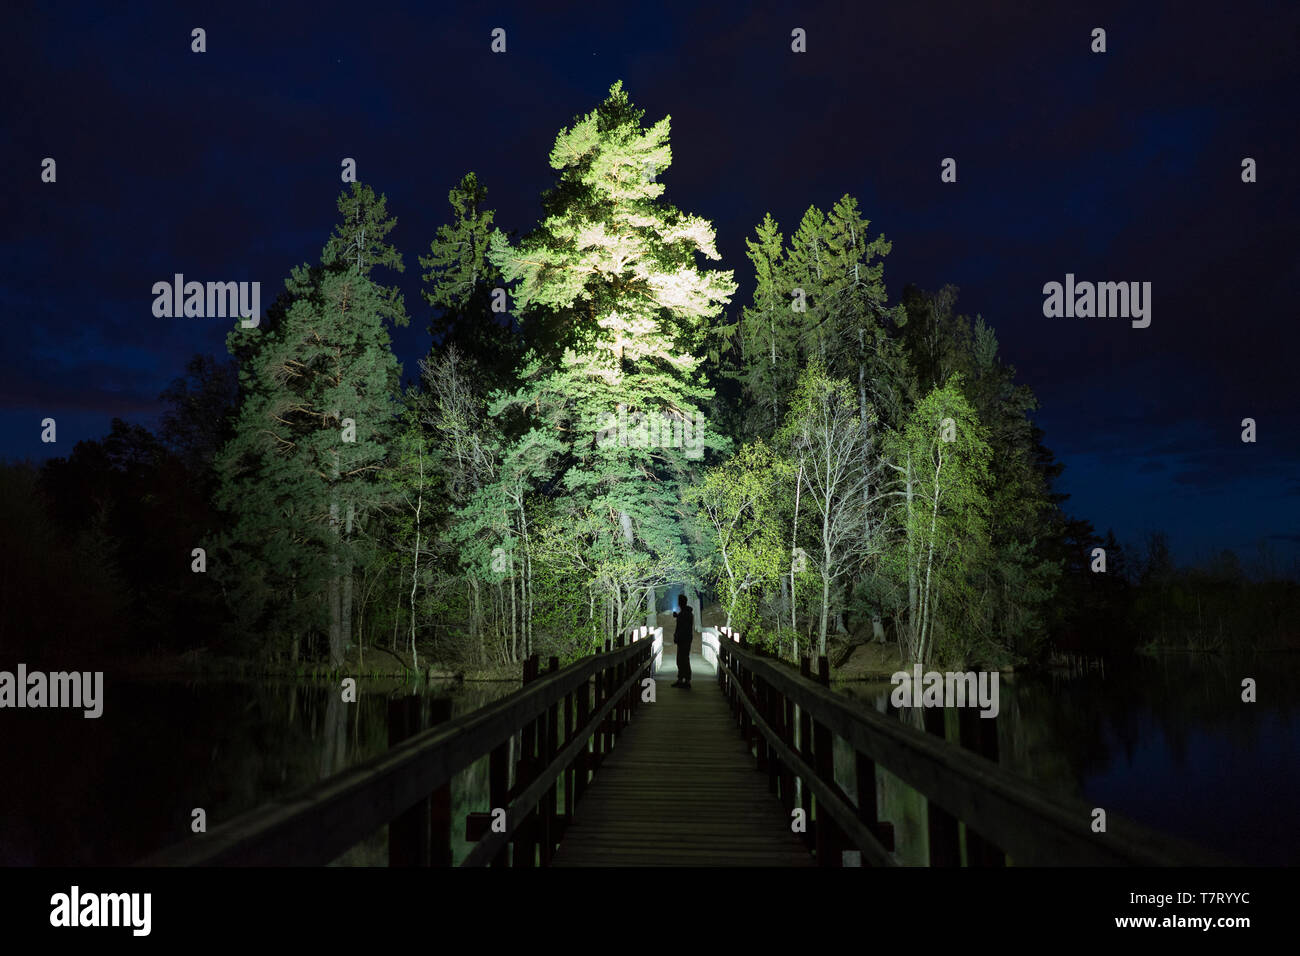 Man standing outdoor at dark night shining with flashlight. Mystical and abstract photo of Swedish nature and landscape. - Stock Image